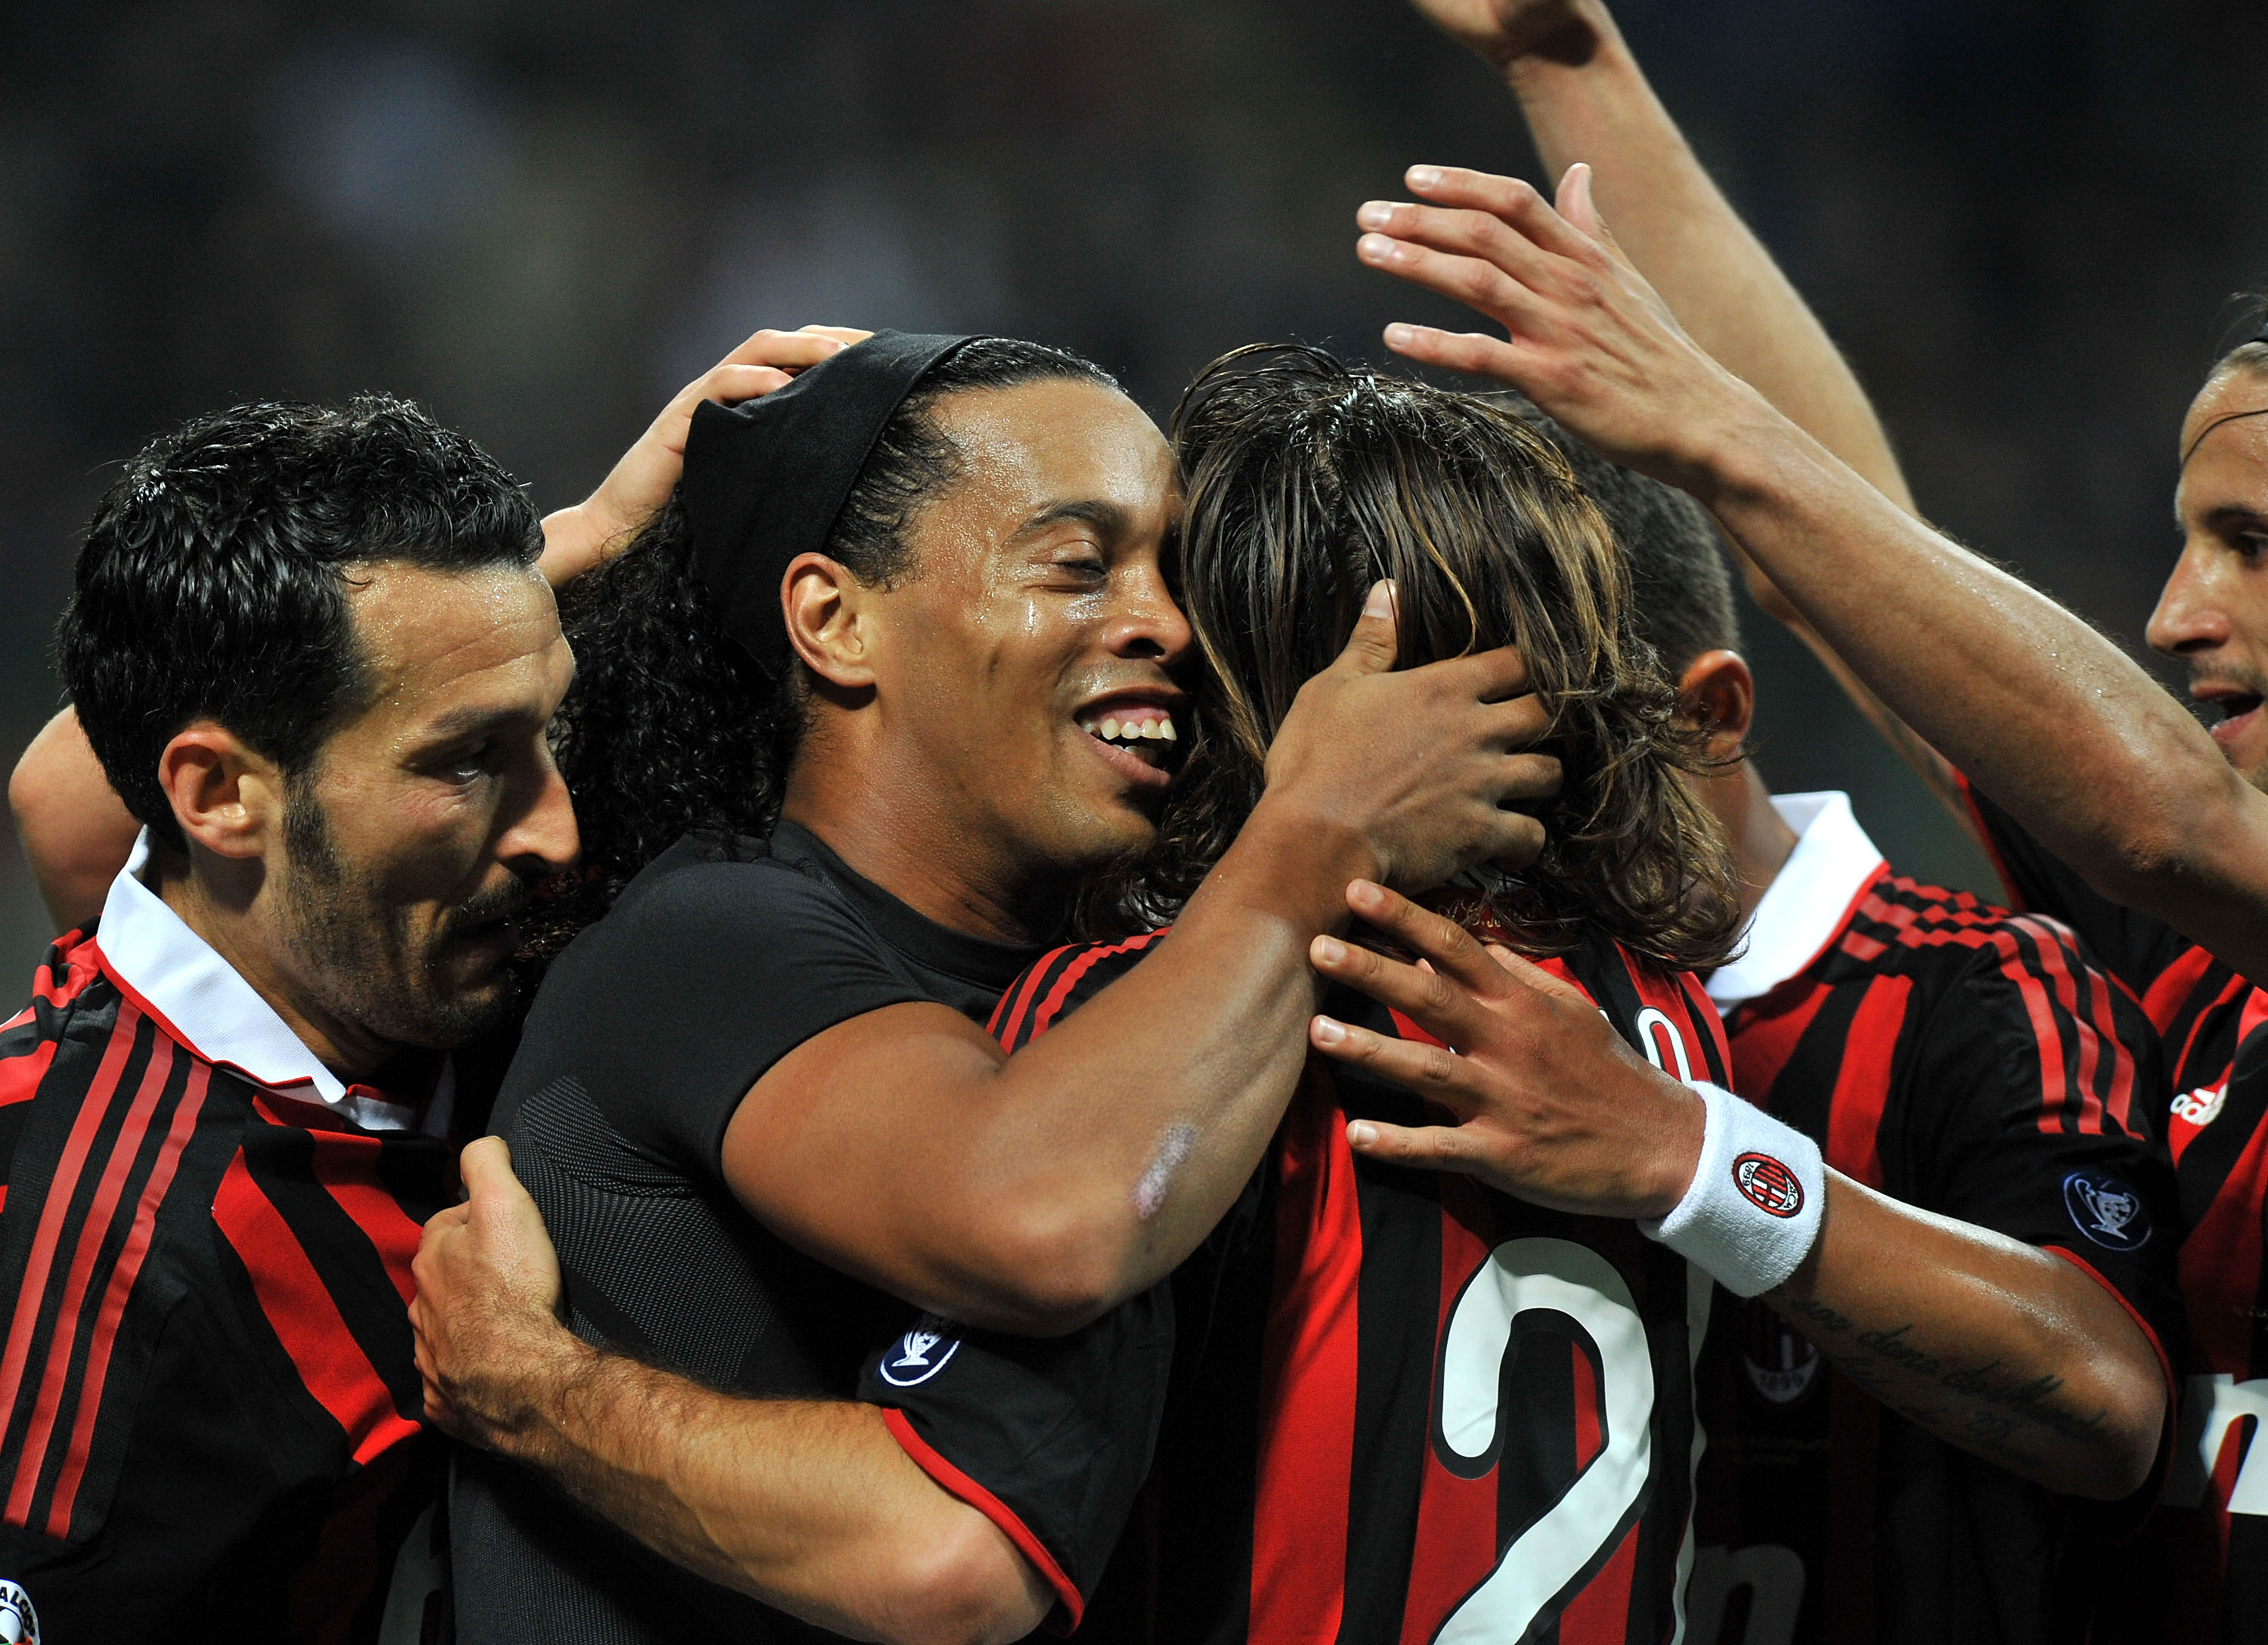 MILAN, ITALY - MAY 15:  Players of AC Milan celebrate  their team's third goal scored by Ronaldinho during the Serie A match between AC Milan and Juventus FC at Stadio Giuseppe Meazza on May 15, 2010 in Milan, Italy.  (Photo by Massimo Cebrelli/Getty Imag